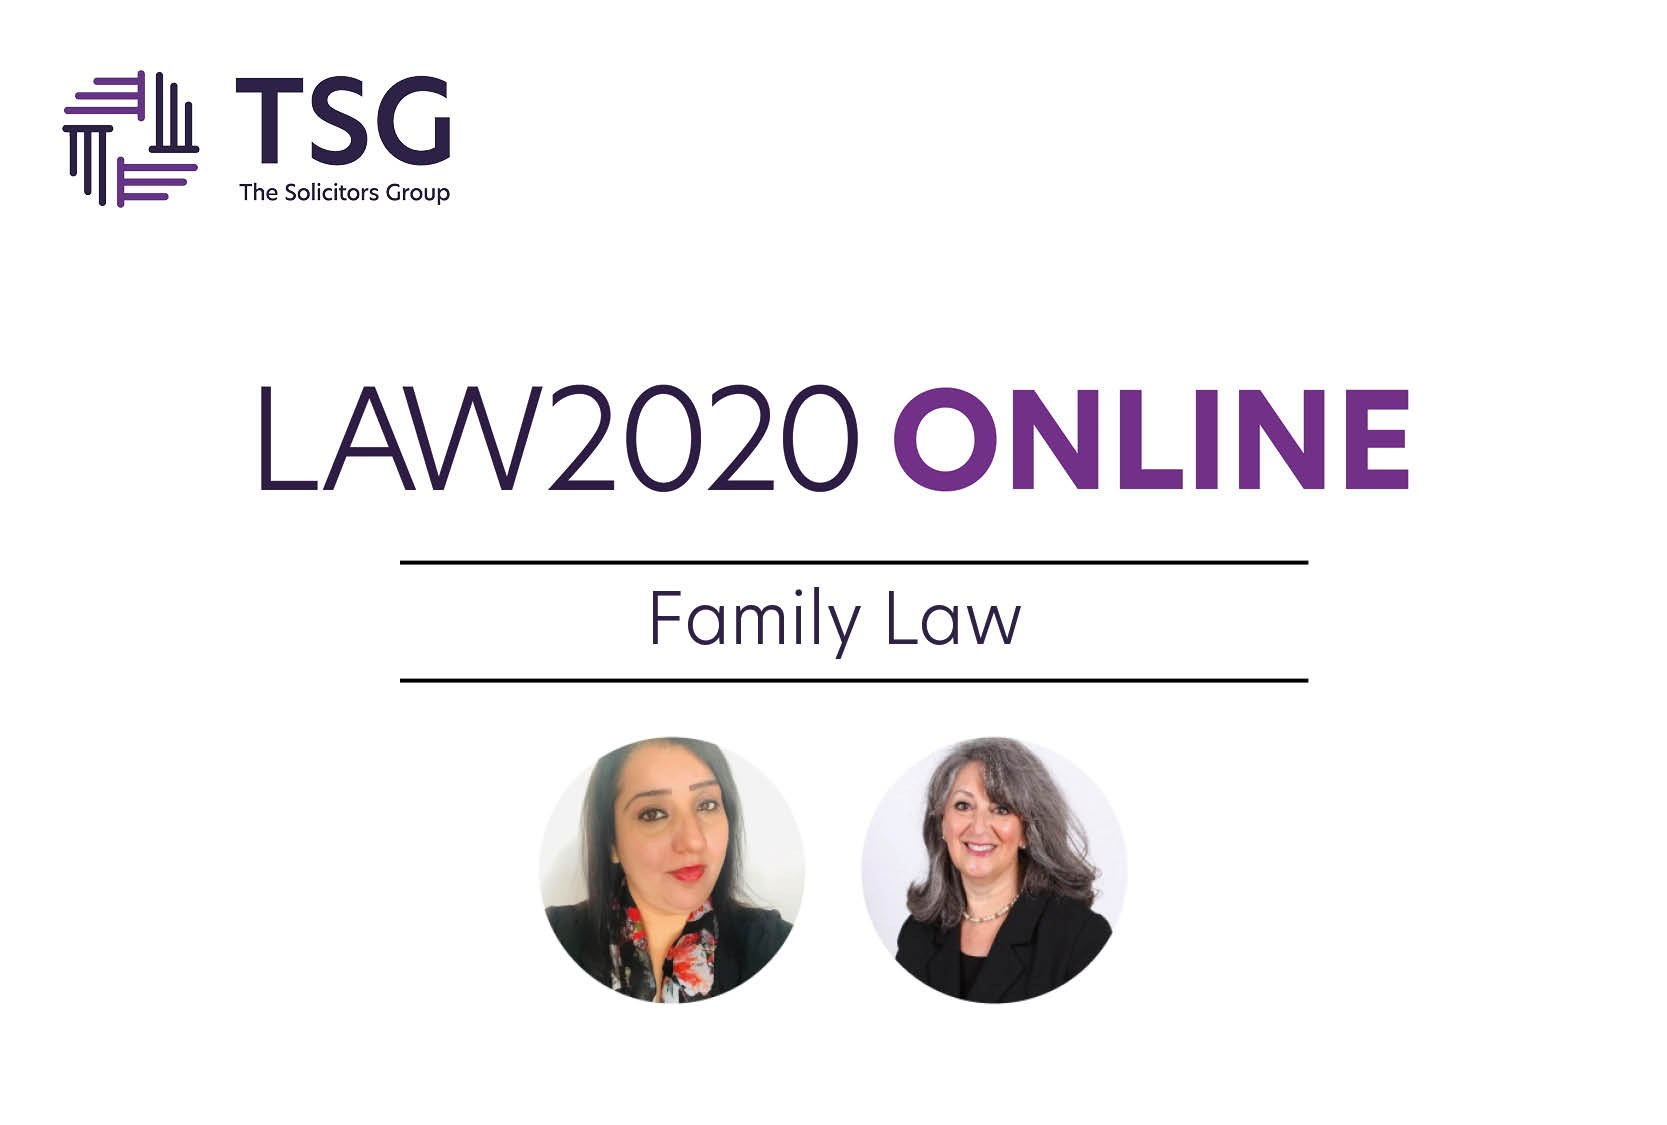 LAW2020 Online Family Law